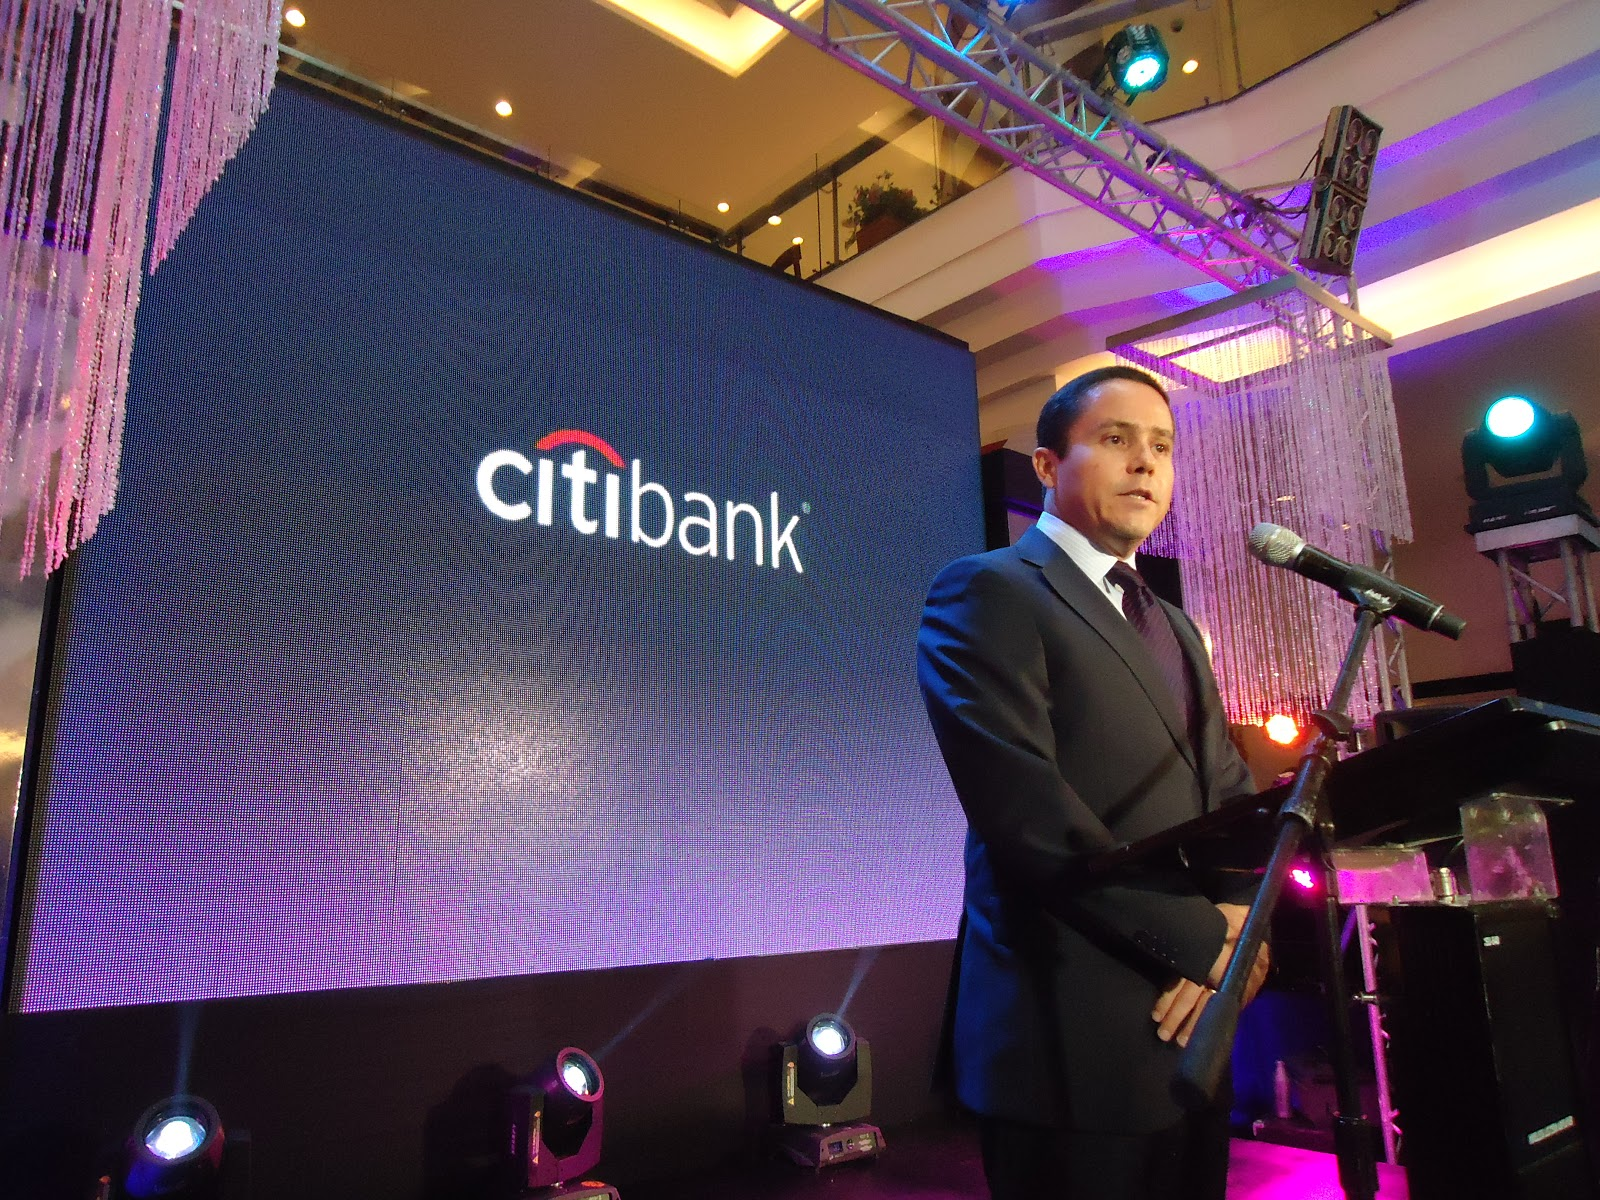 Citibank+in+the+Philippines_Megaworld+Citibank+Card+launch_111412